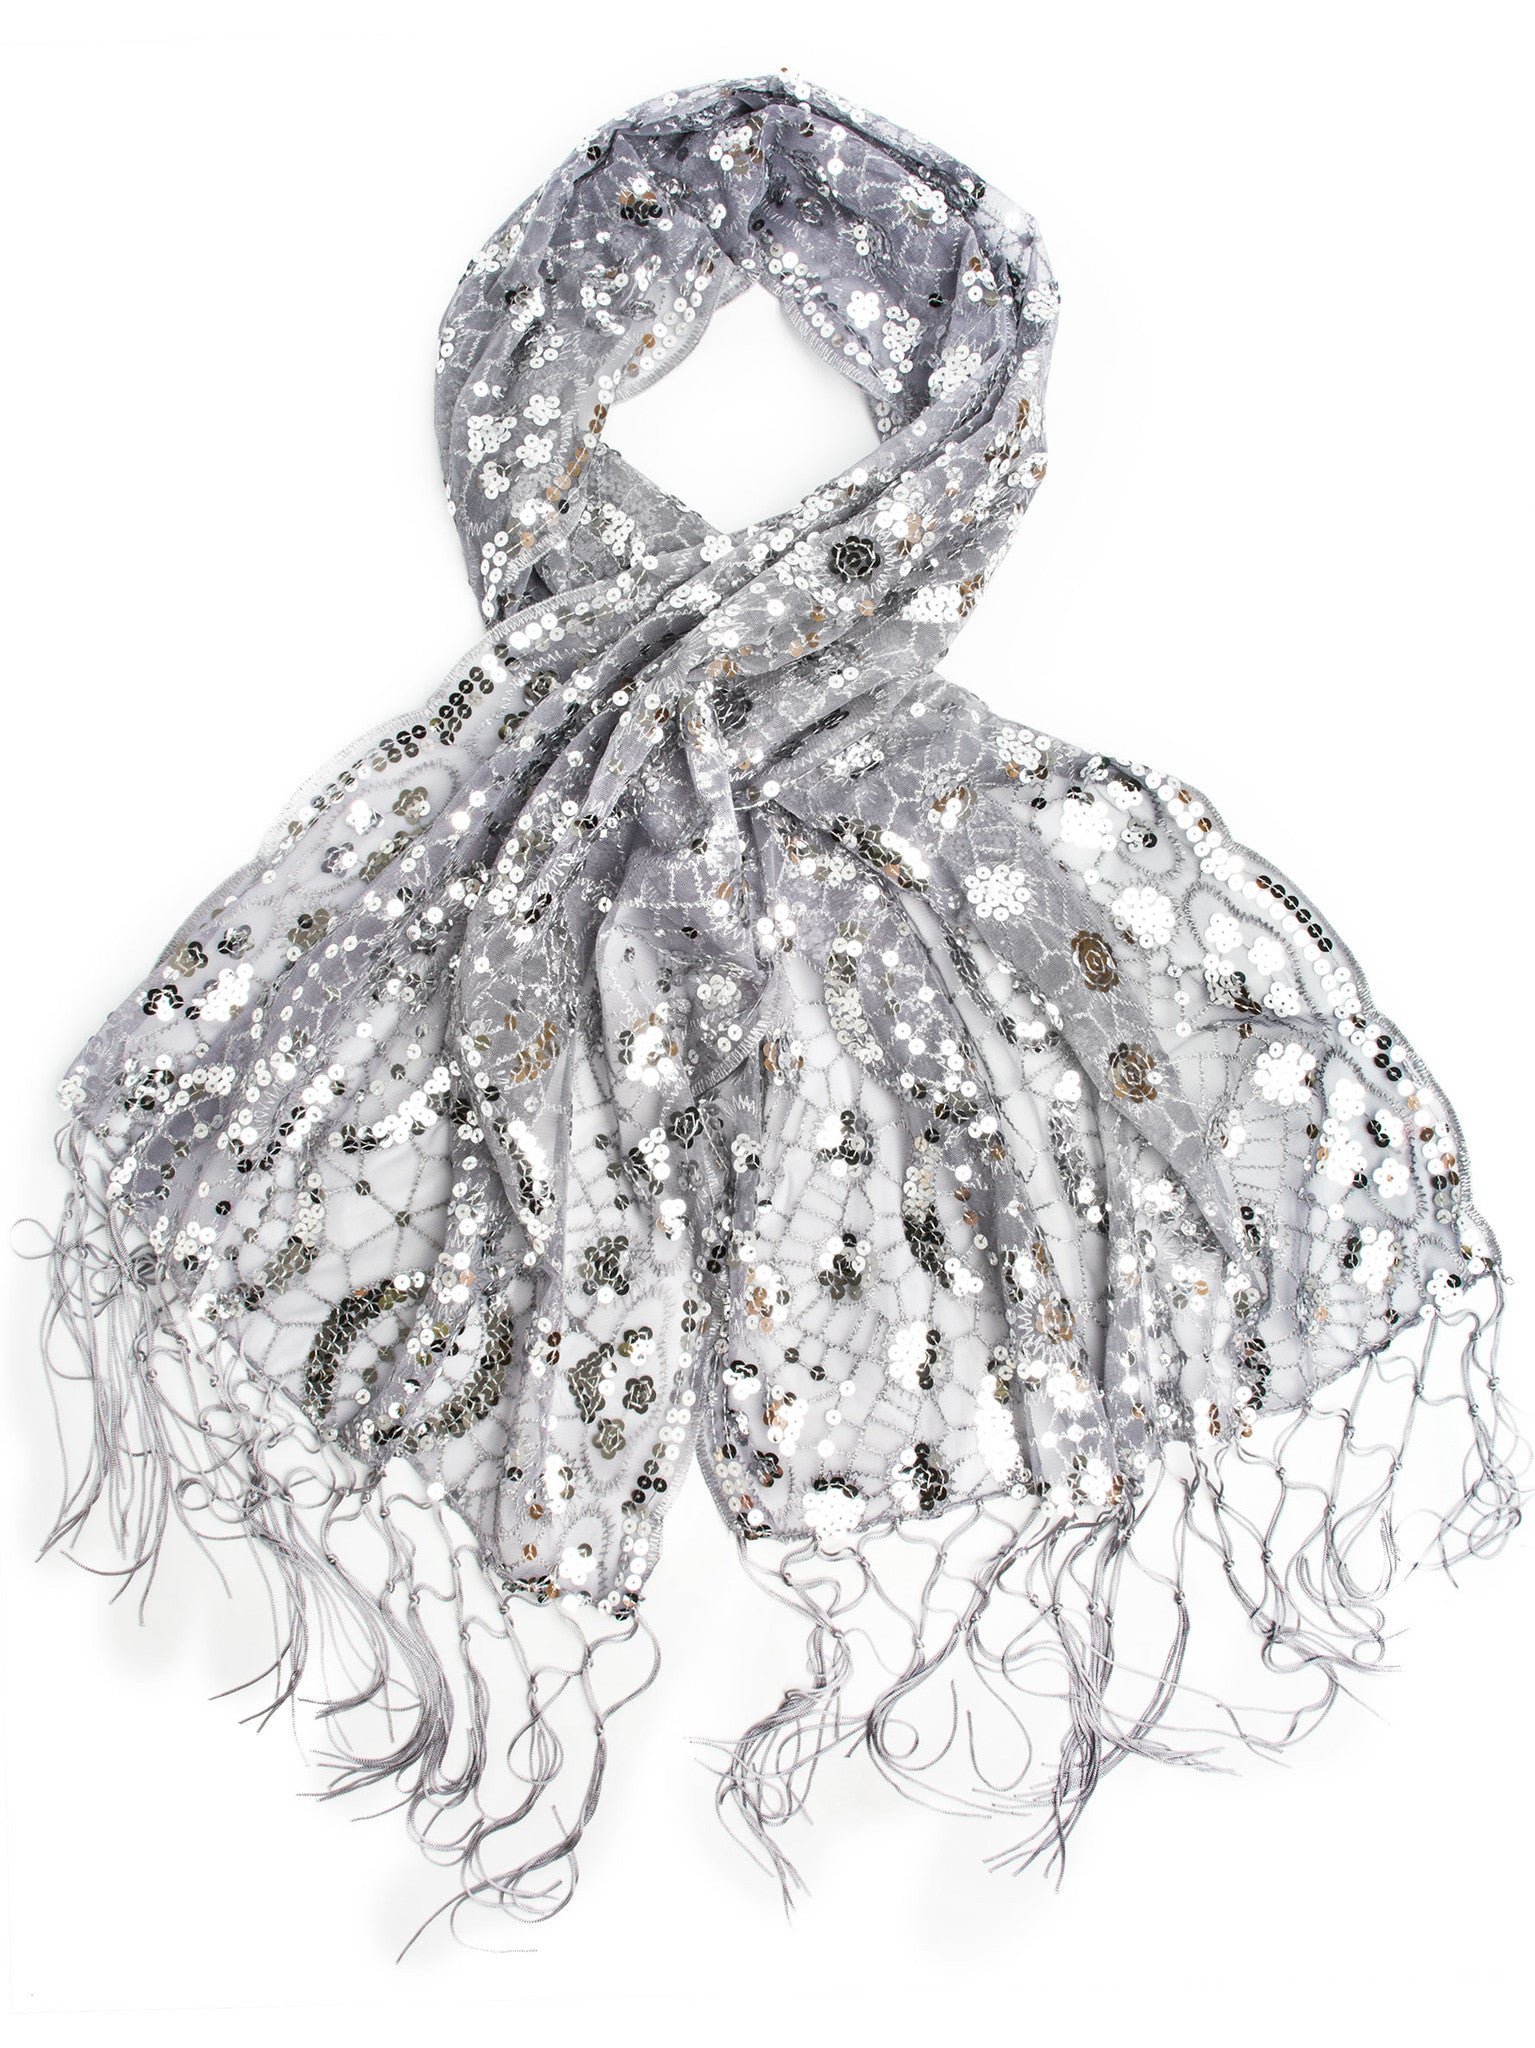 Scarves - Vera, Vintage Inspired Sequin Shawl, Evening Wrap, Embroidered Sequin Fringe Shawl or Scarf -(Gray/Silver) Bohomonde  - 4